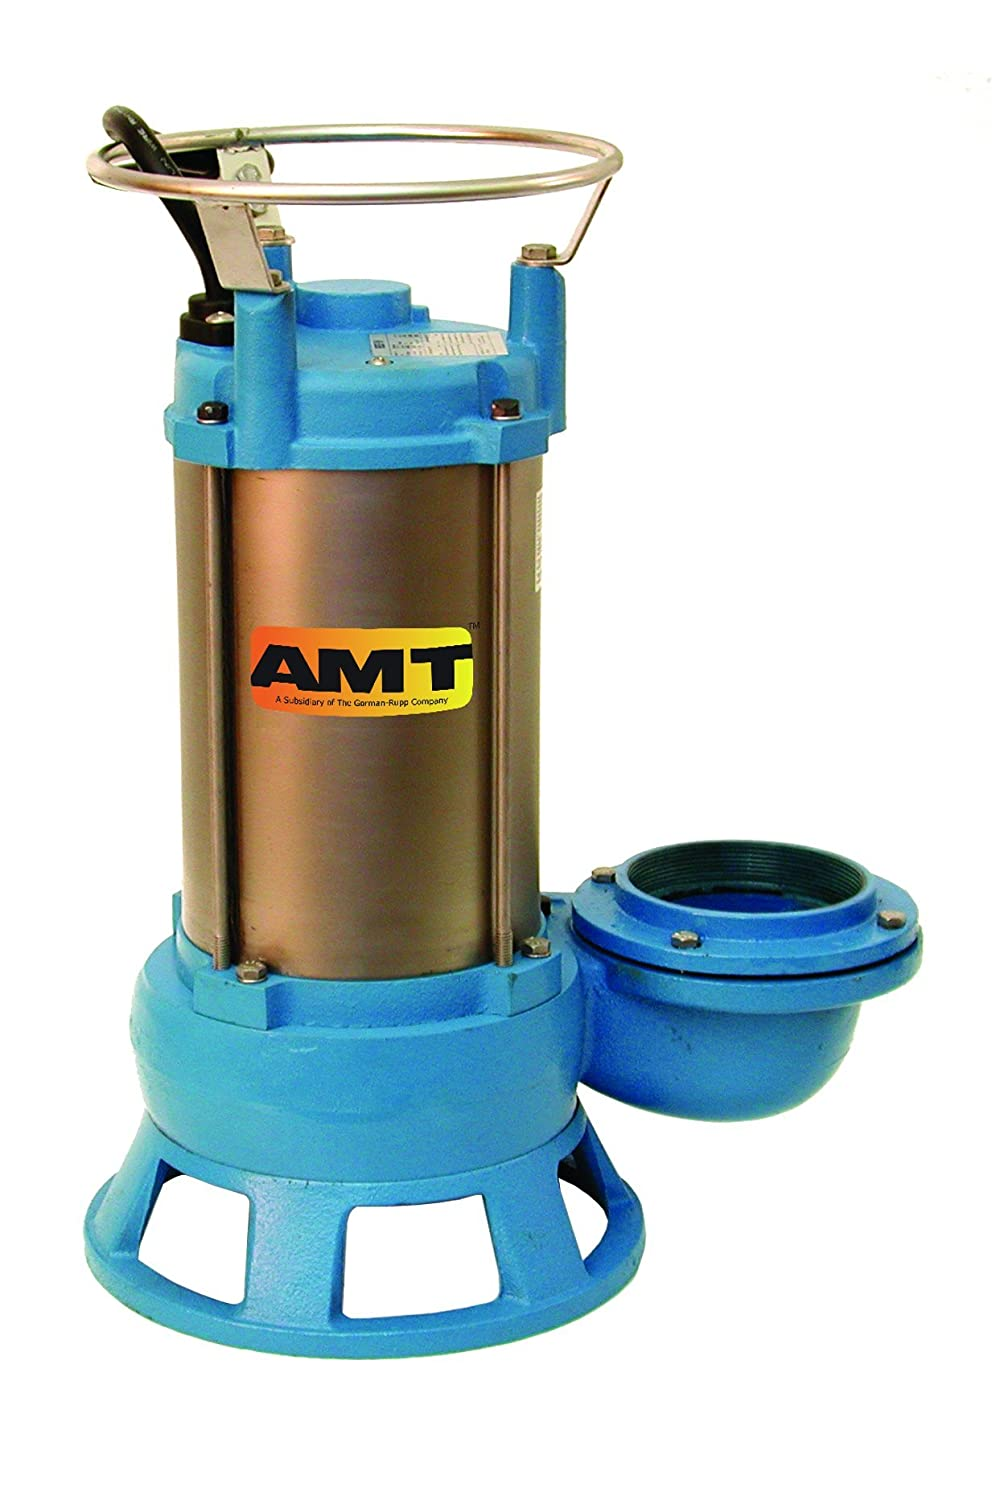 "AMT Pump 5760-95 Submersible Shredder Sewage Pump, Cast Iron, 1 HP, 1 Phase, 115V, Curve A, 2"" NPT Female Discharge Port"